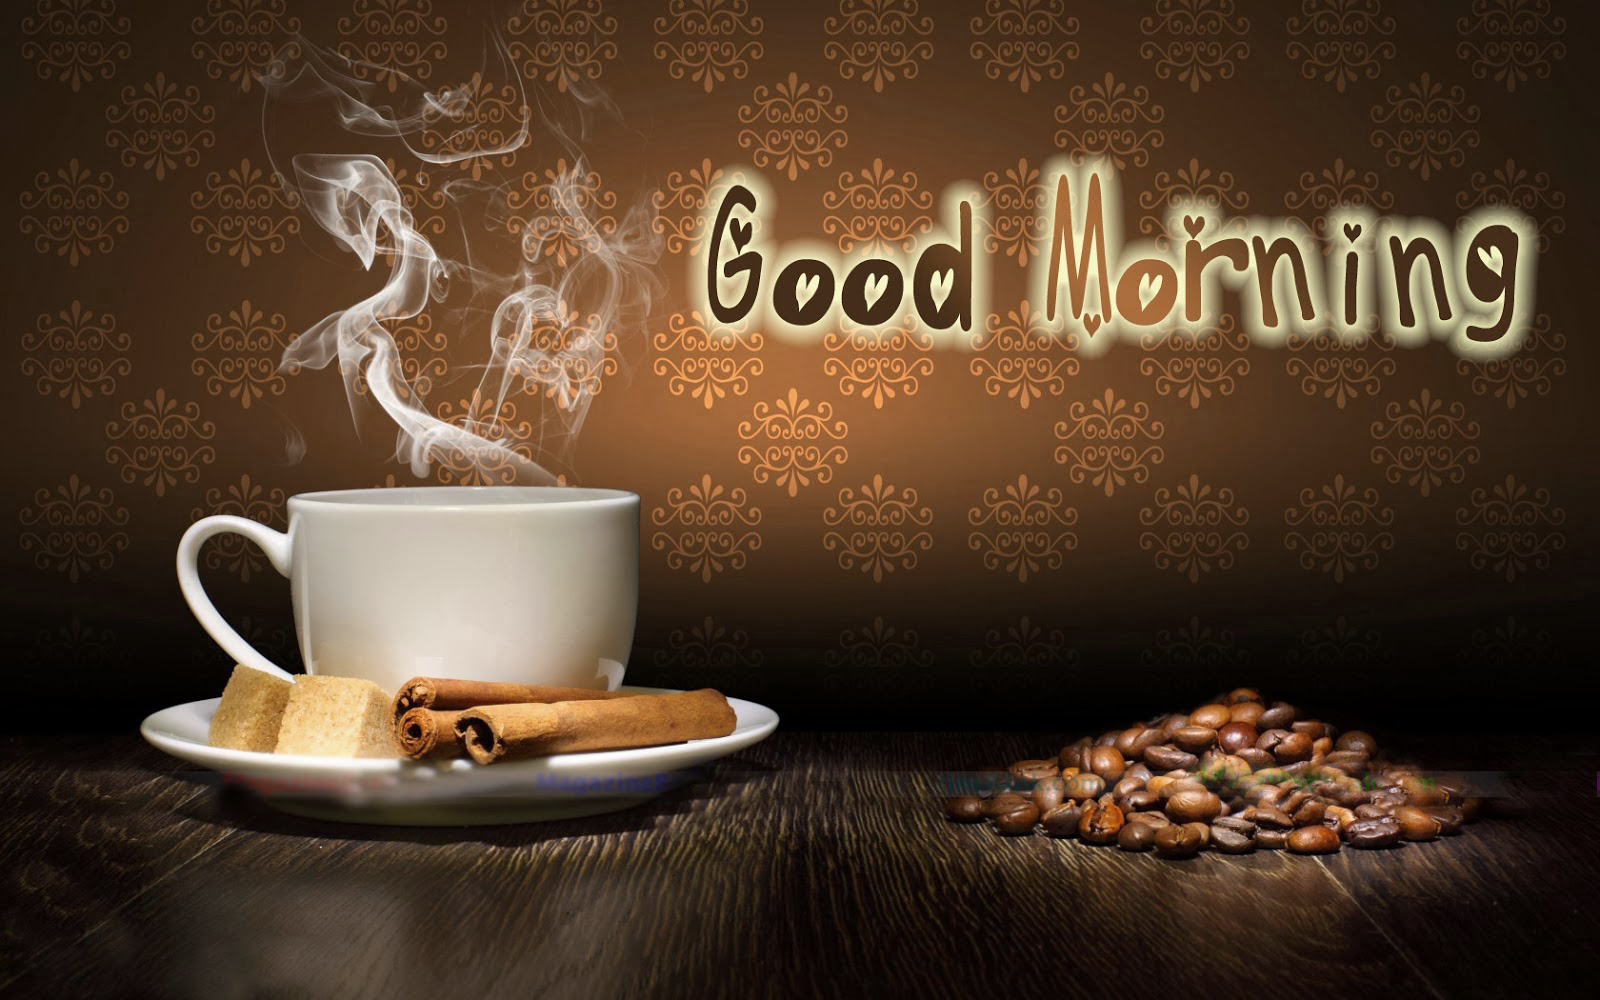 Good Morning Coffee: Good Morning Wallpapers HD Download Free 1080p